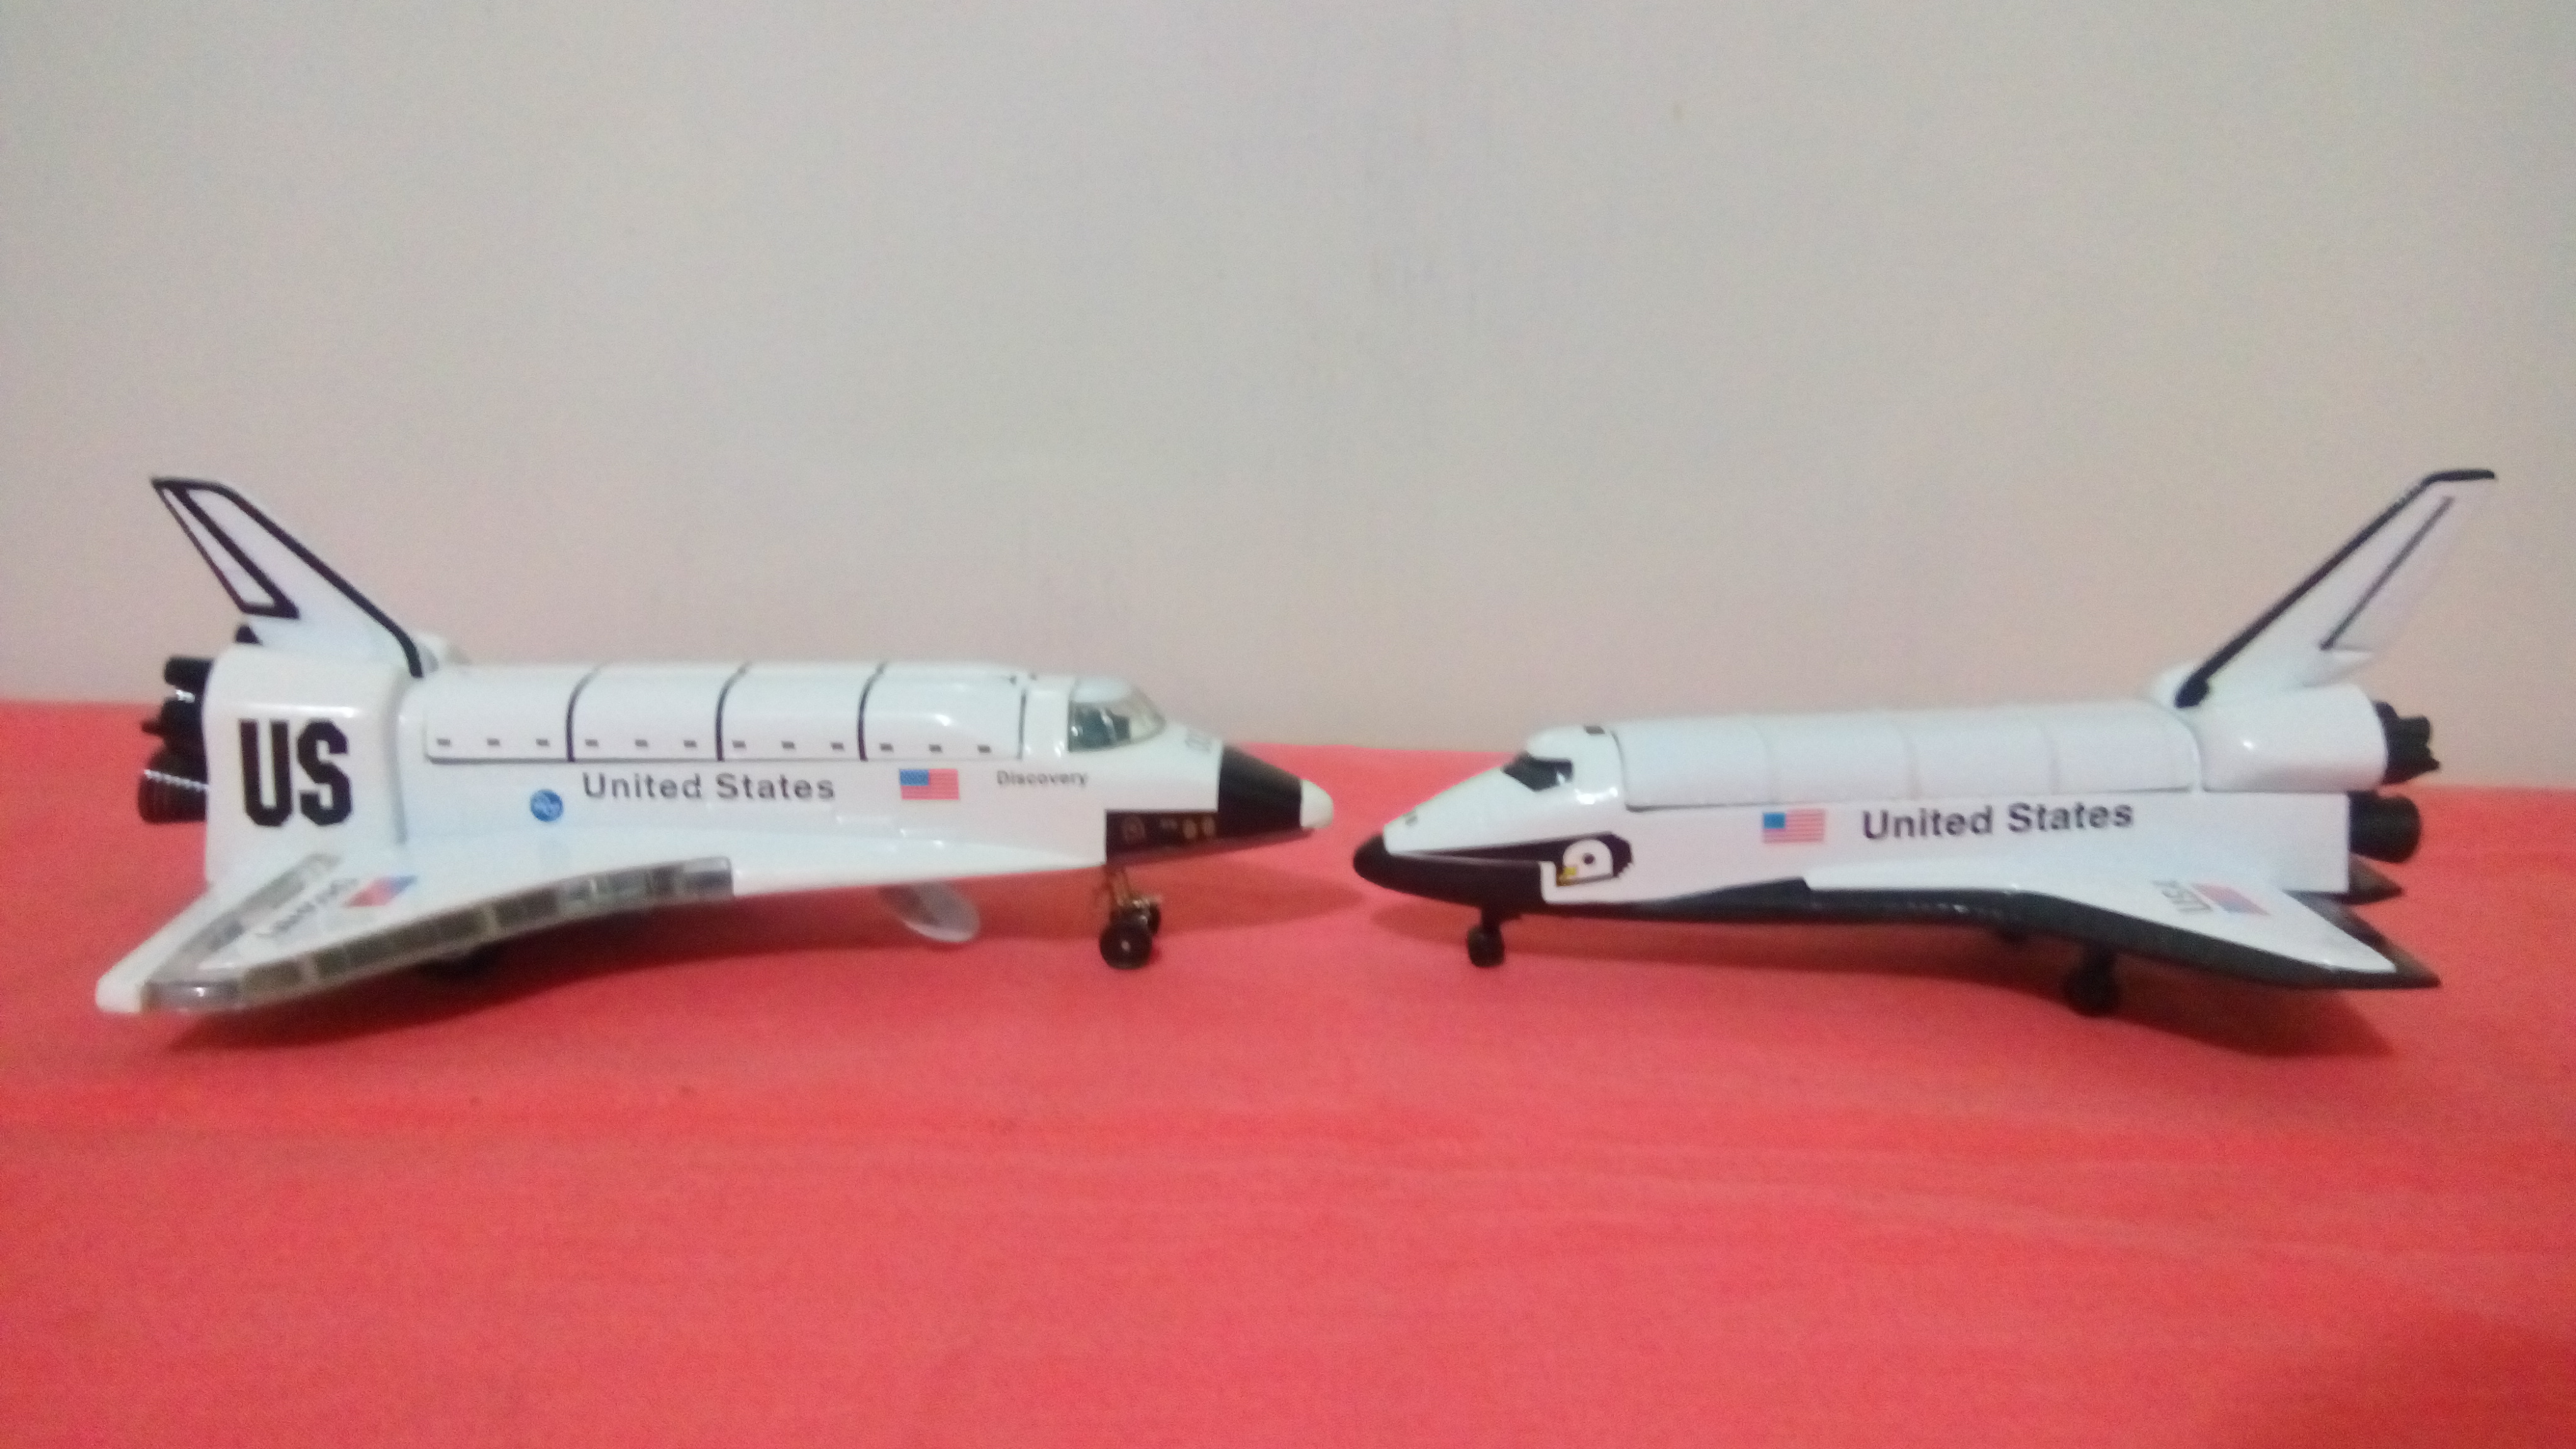 File:Space Shuttle Toy 1.jpg